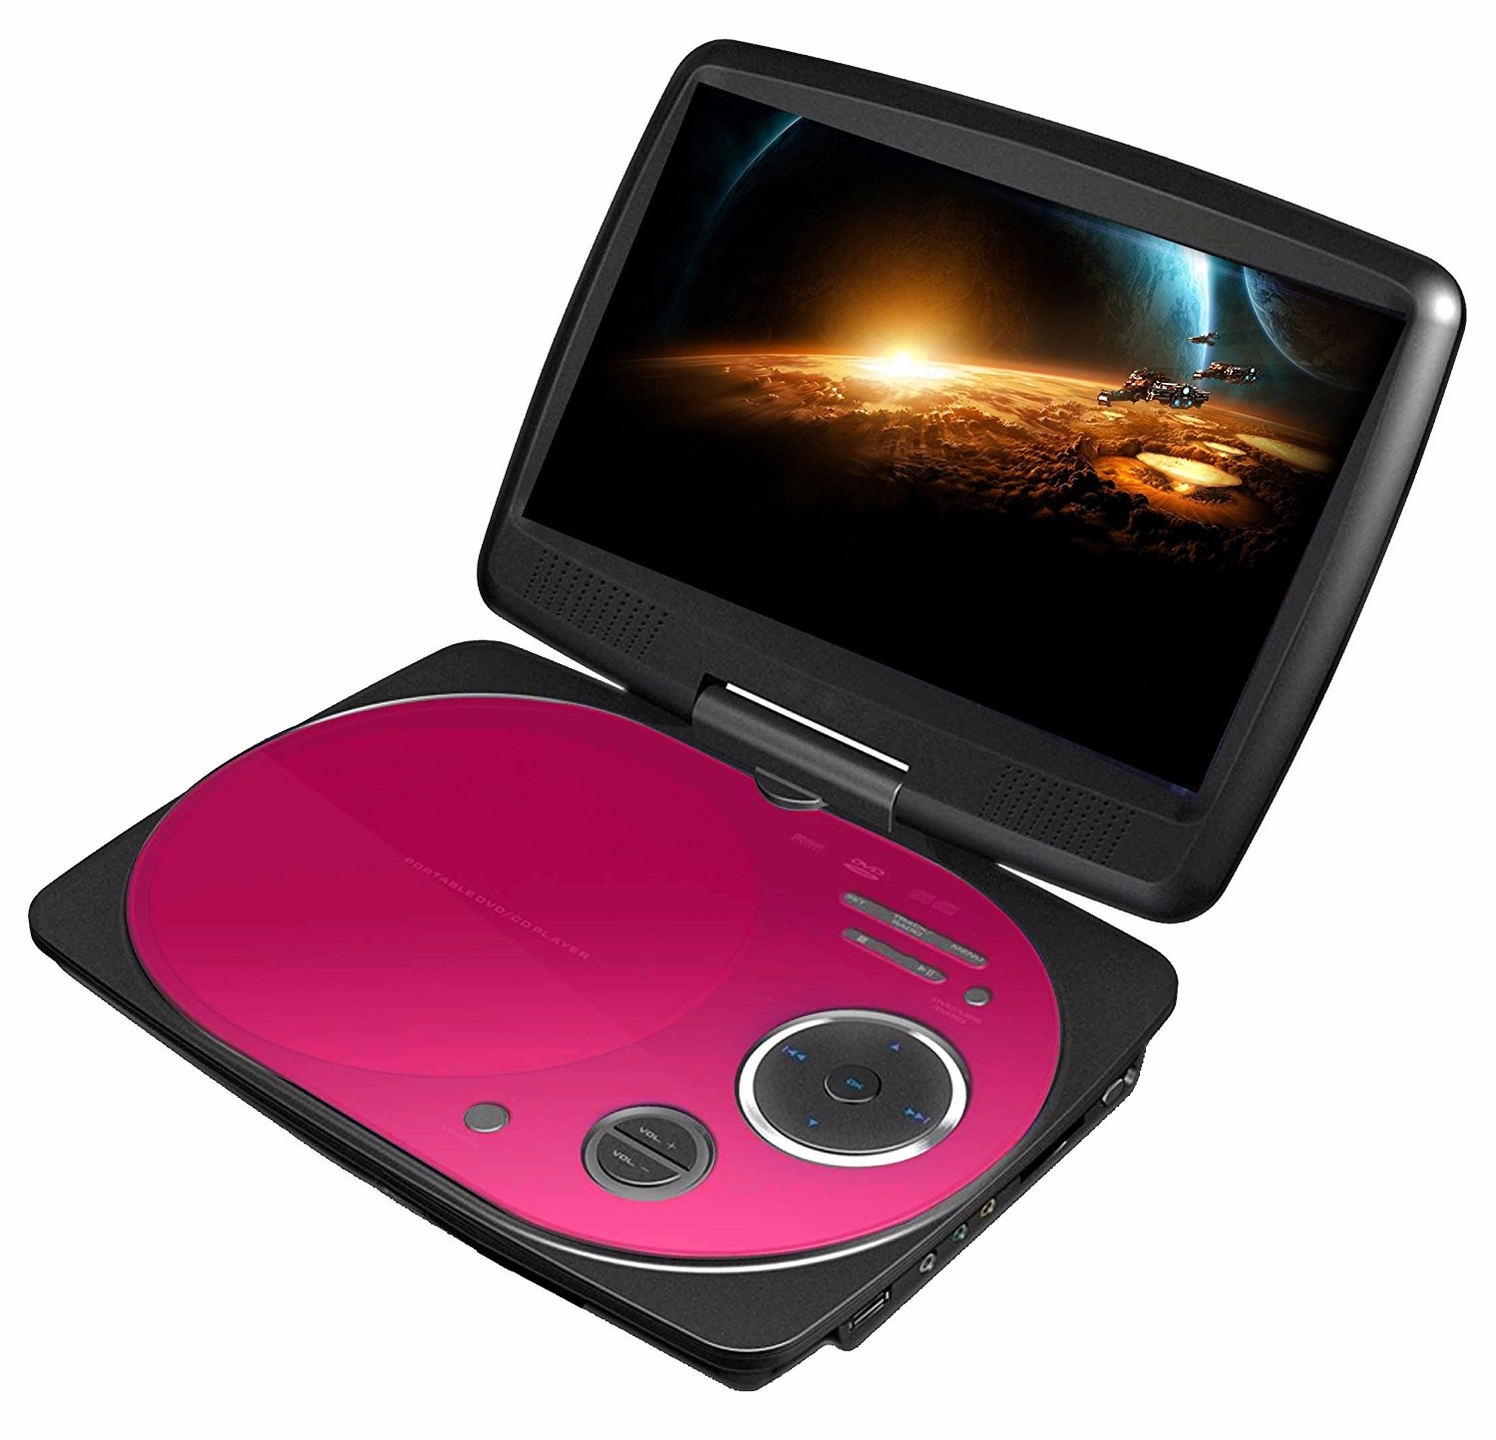 Portable DVD Player (@portabledvdplayer) Cover Image